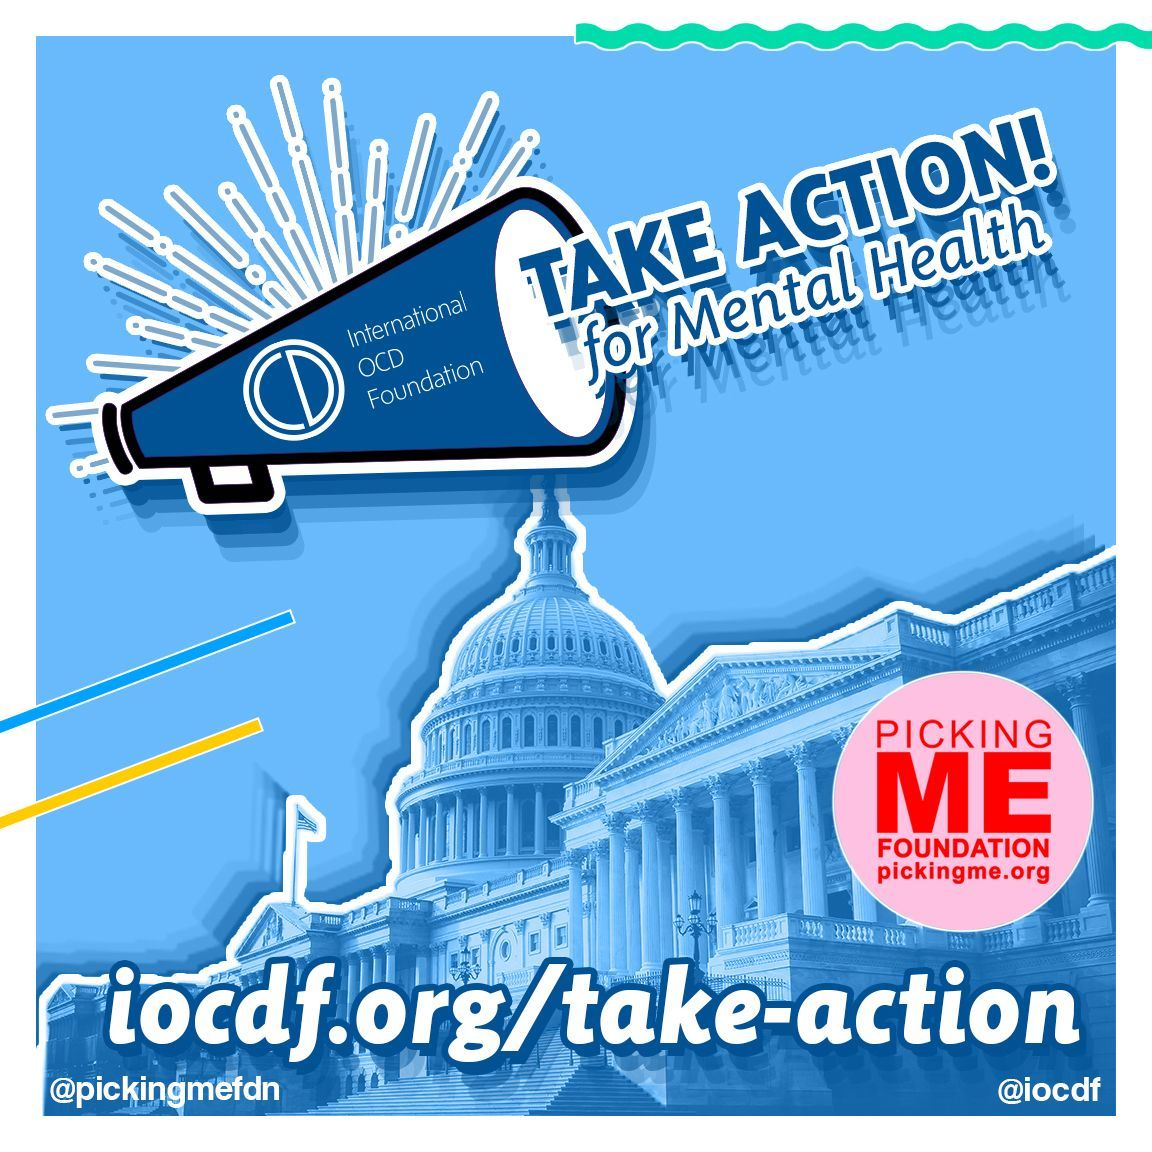 International OCD Foundation's Take Action Campaign